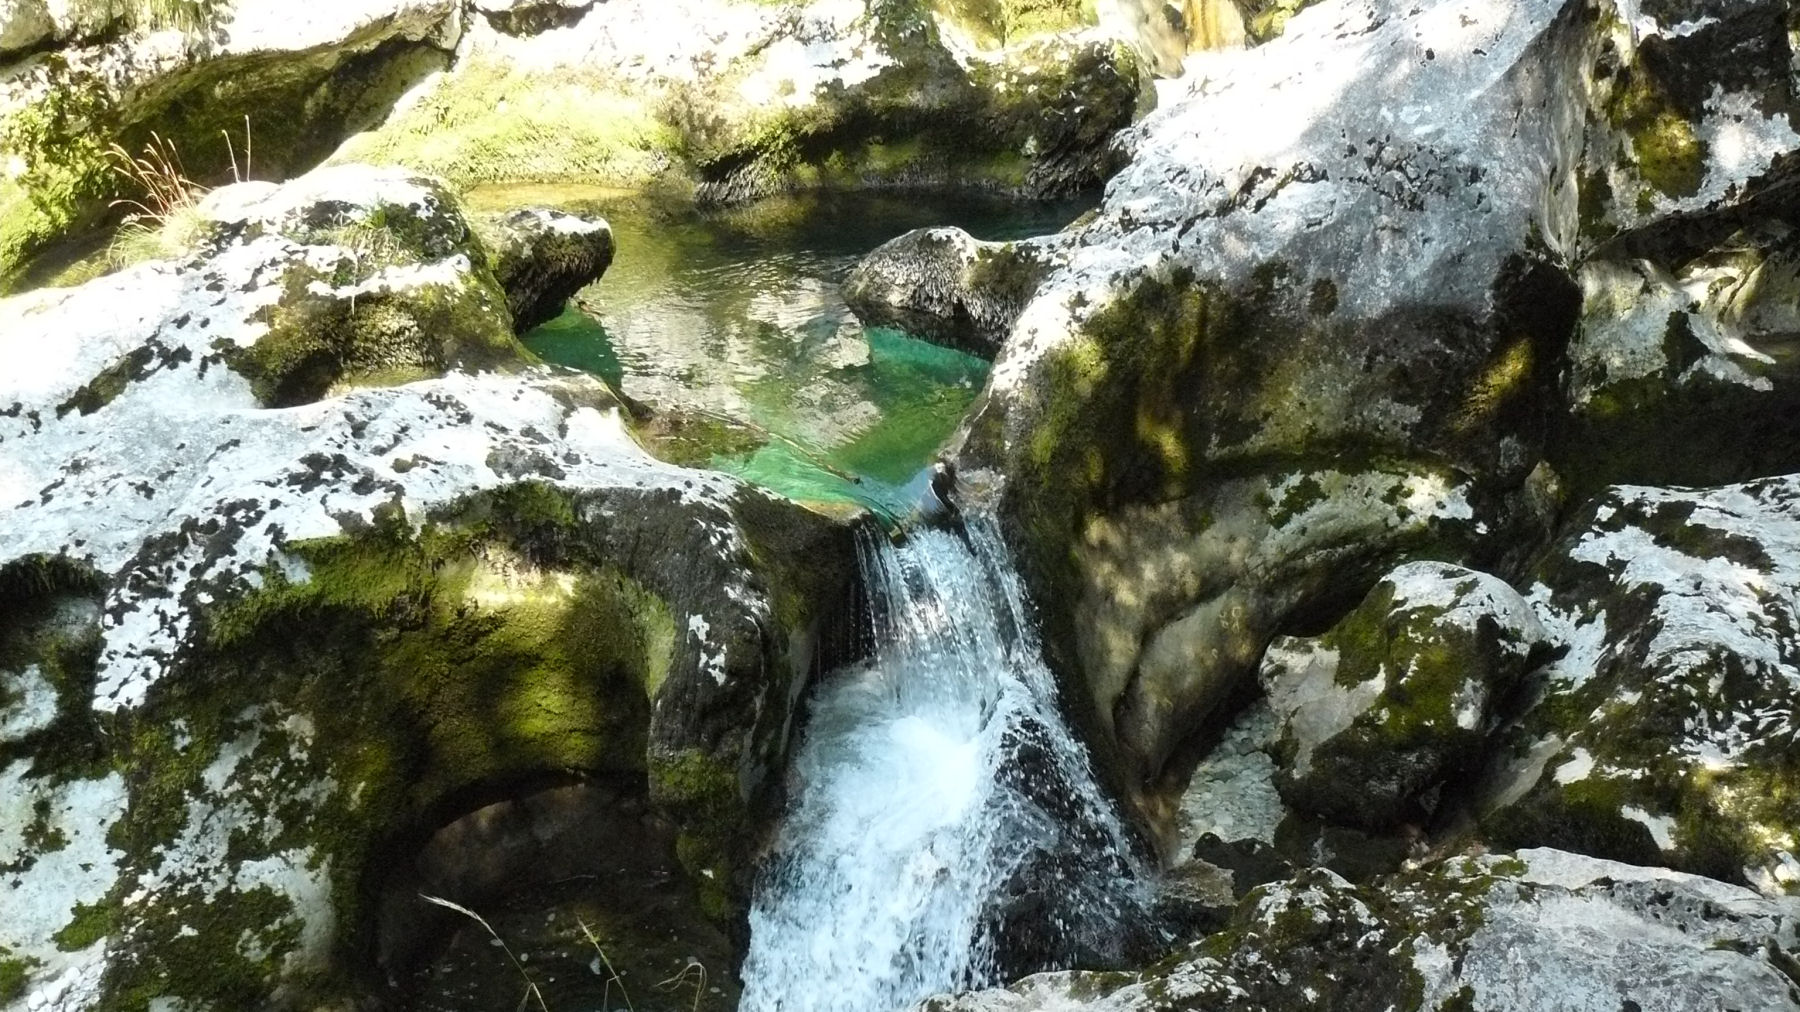 Mostnica gorge with a crystal-clear water